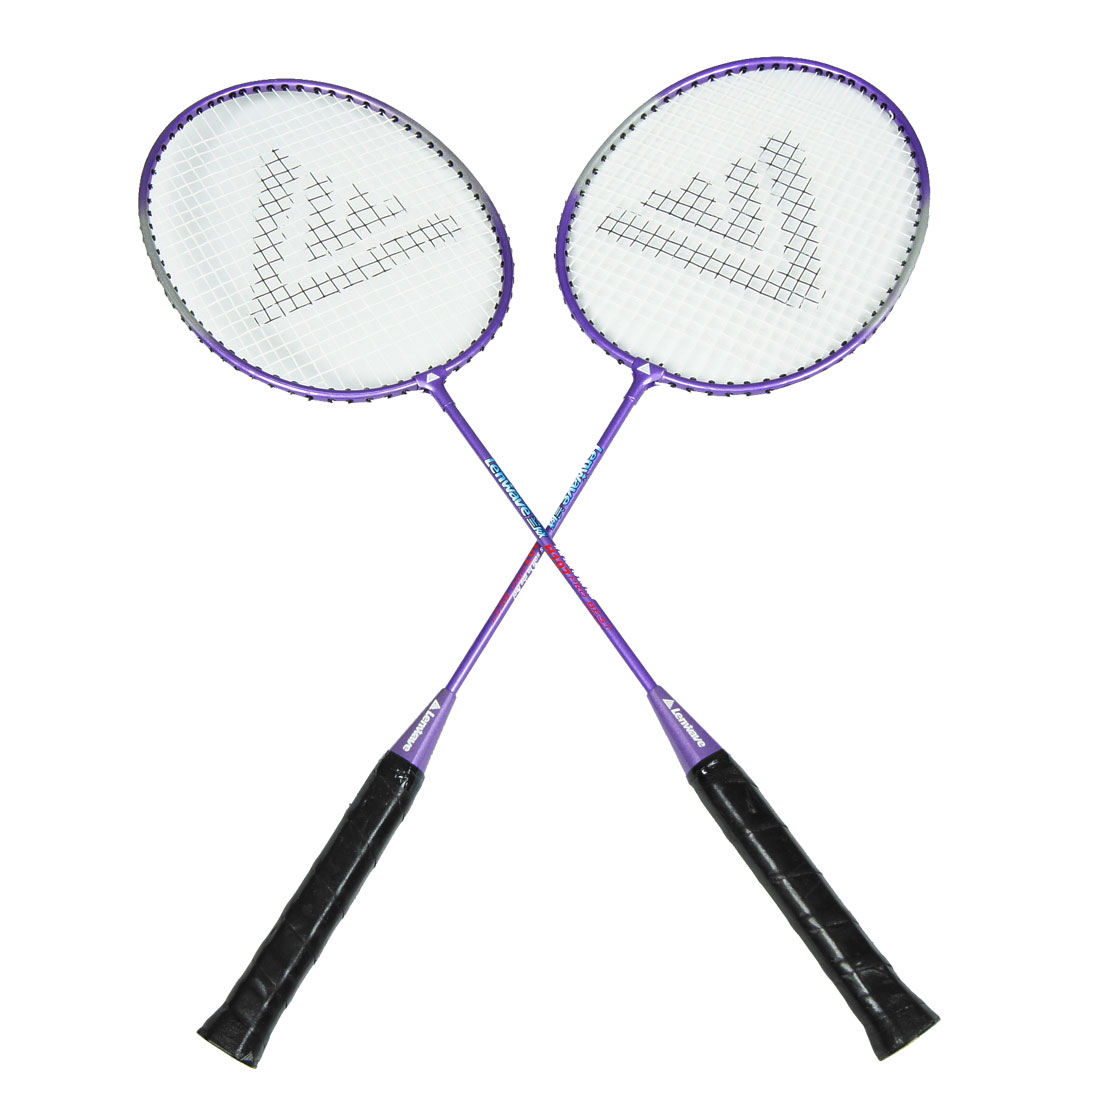 Sports Nonslip Plastic Handle Badminton Rackets Black Purple Pair